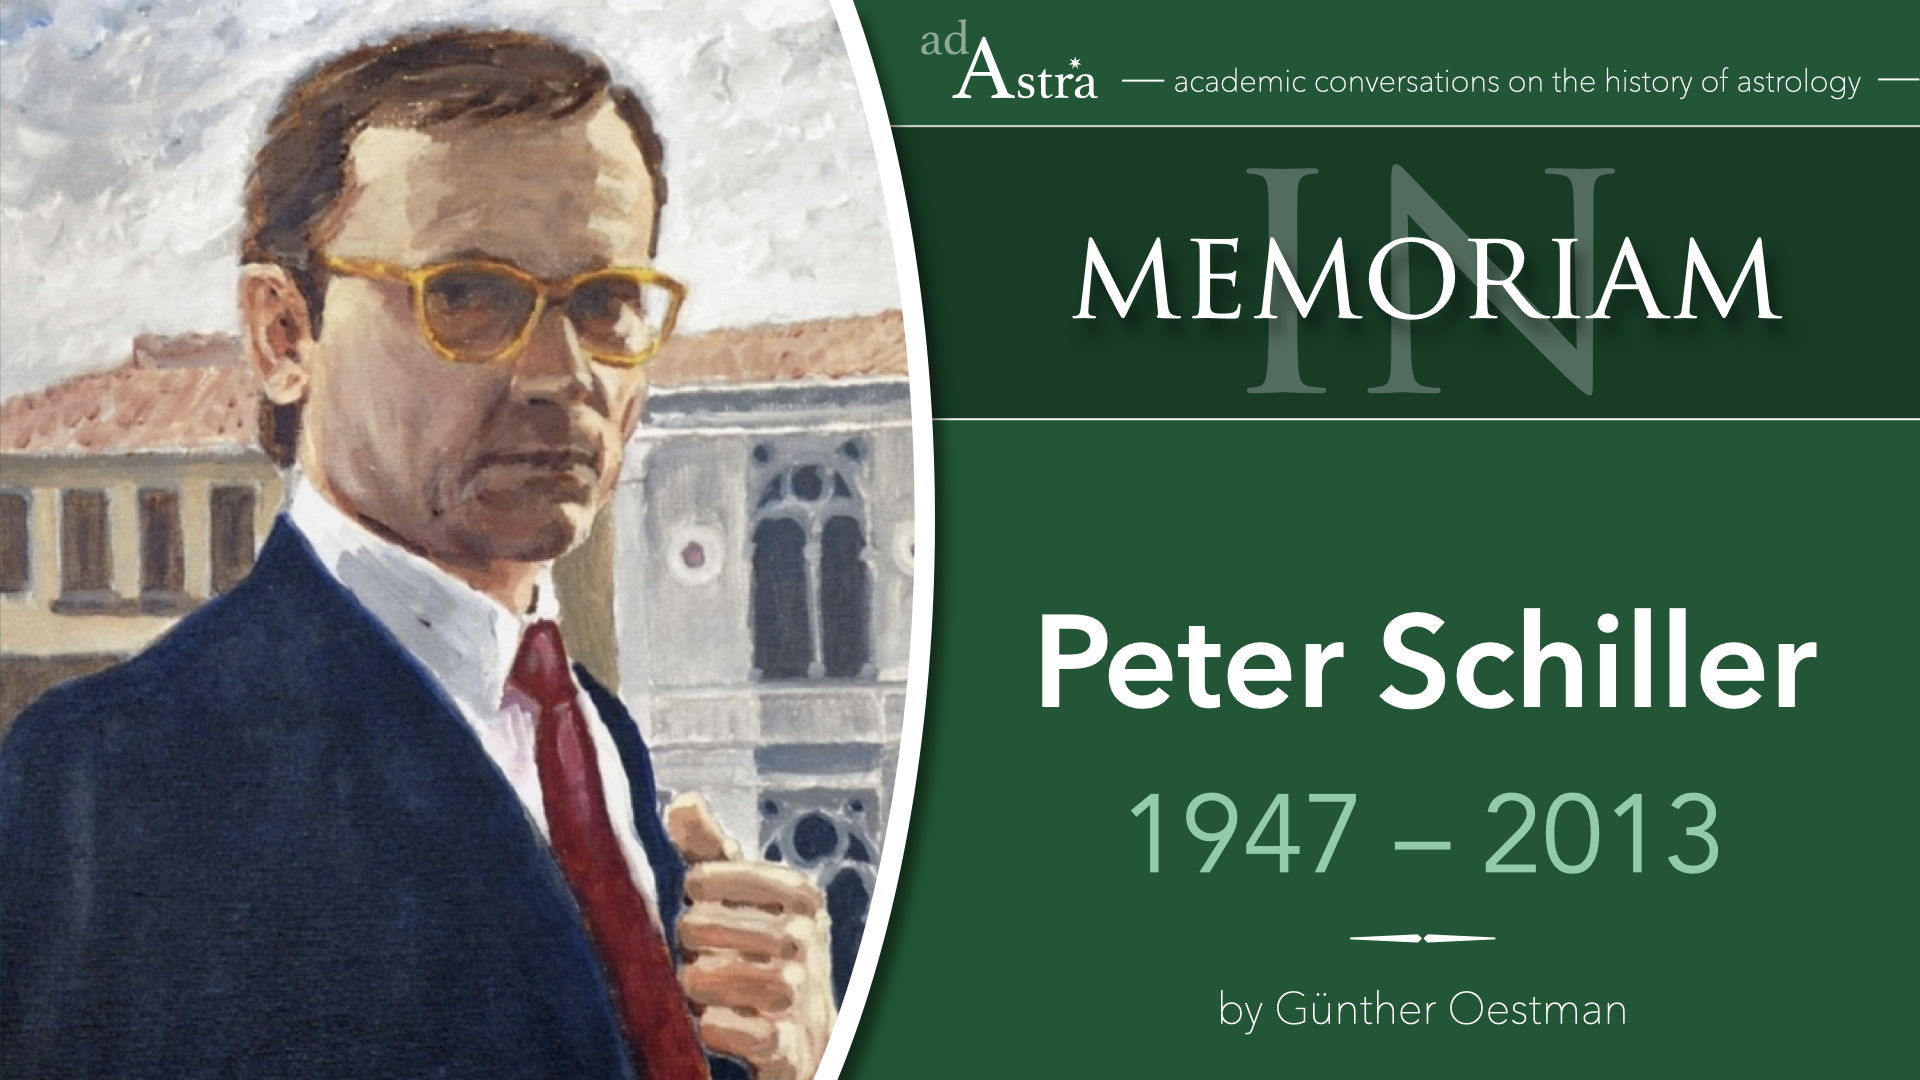 Peter Schiller (1947-2013): Astrology And Art